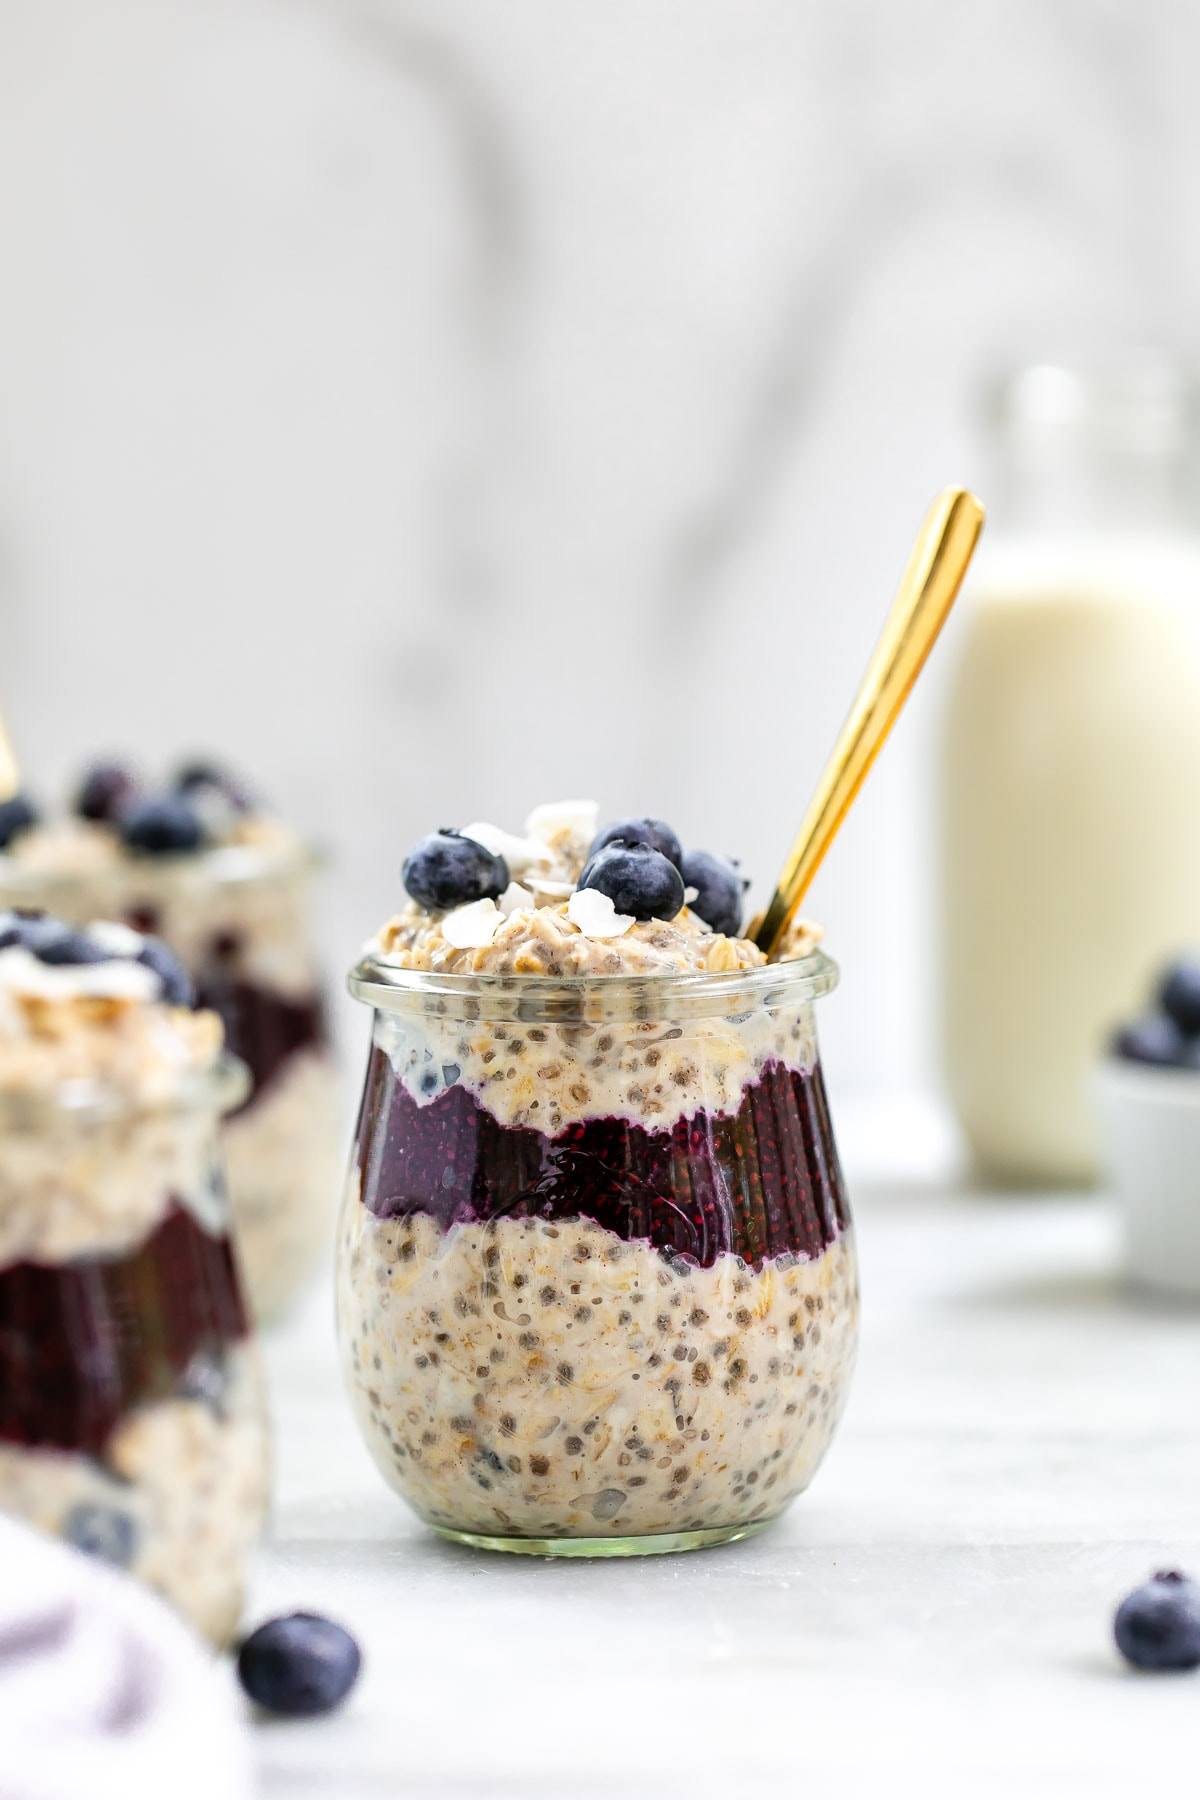 Up close image of blueberry overnight oats with coconut flakes on top.